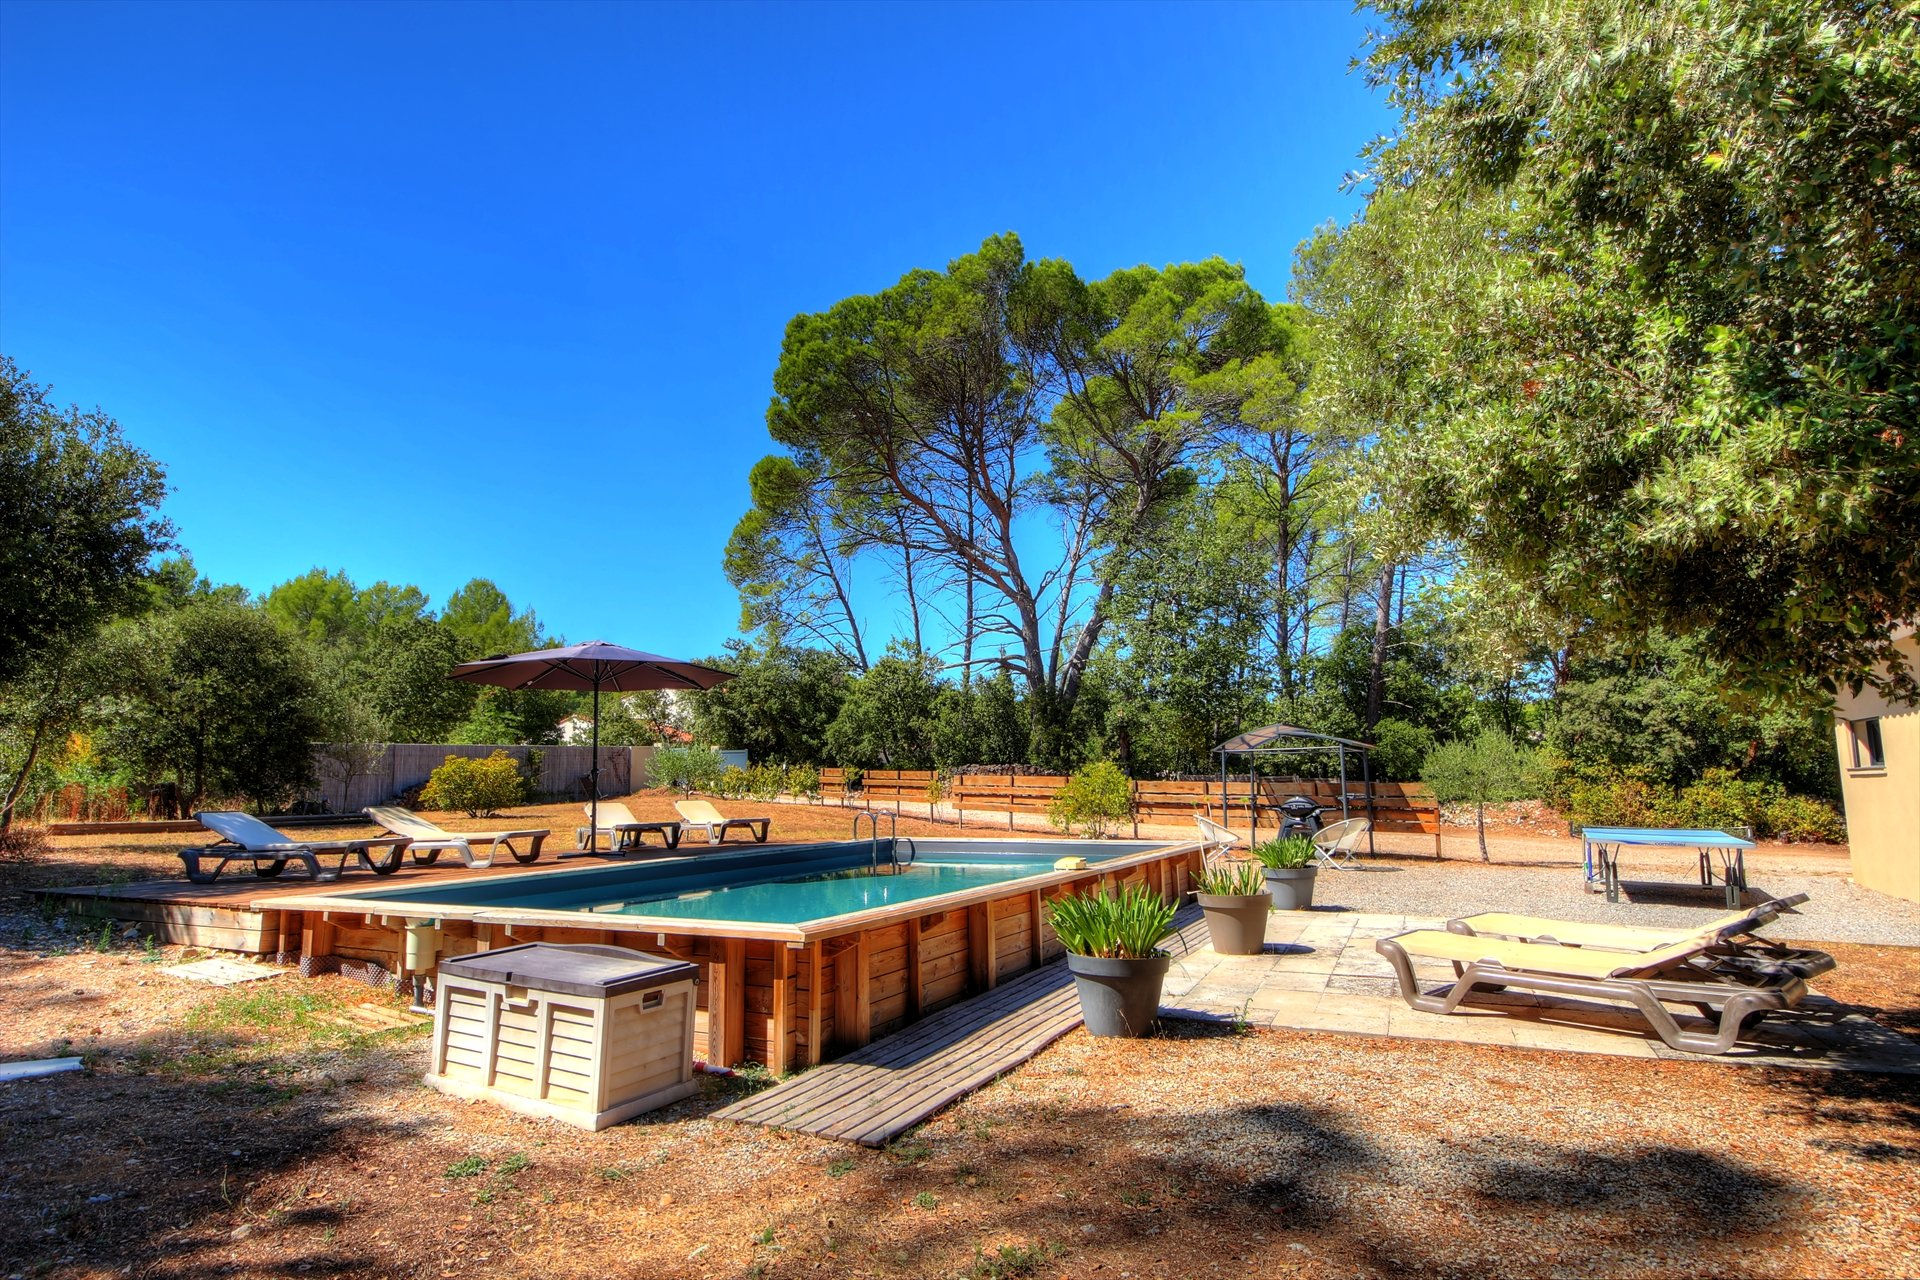 Superbe maison contemporaine avec piscine - Lorgues Var Provence